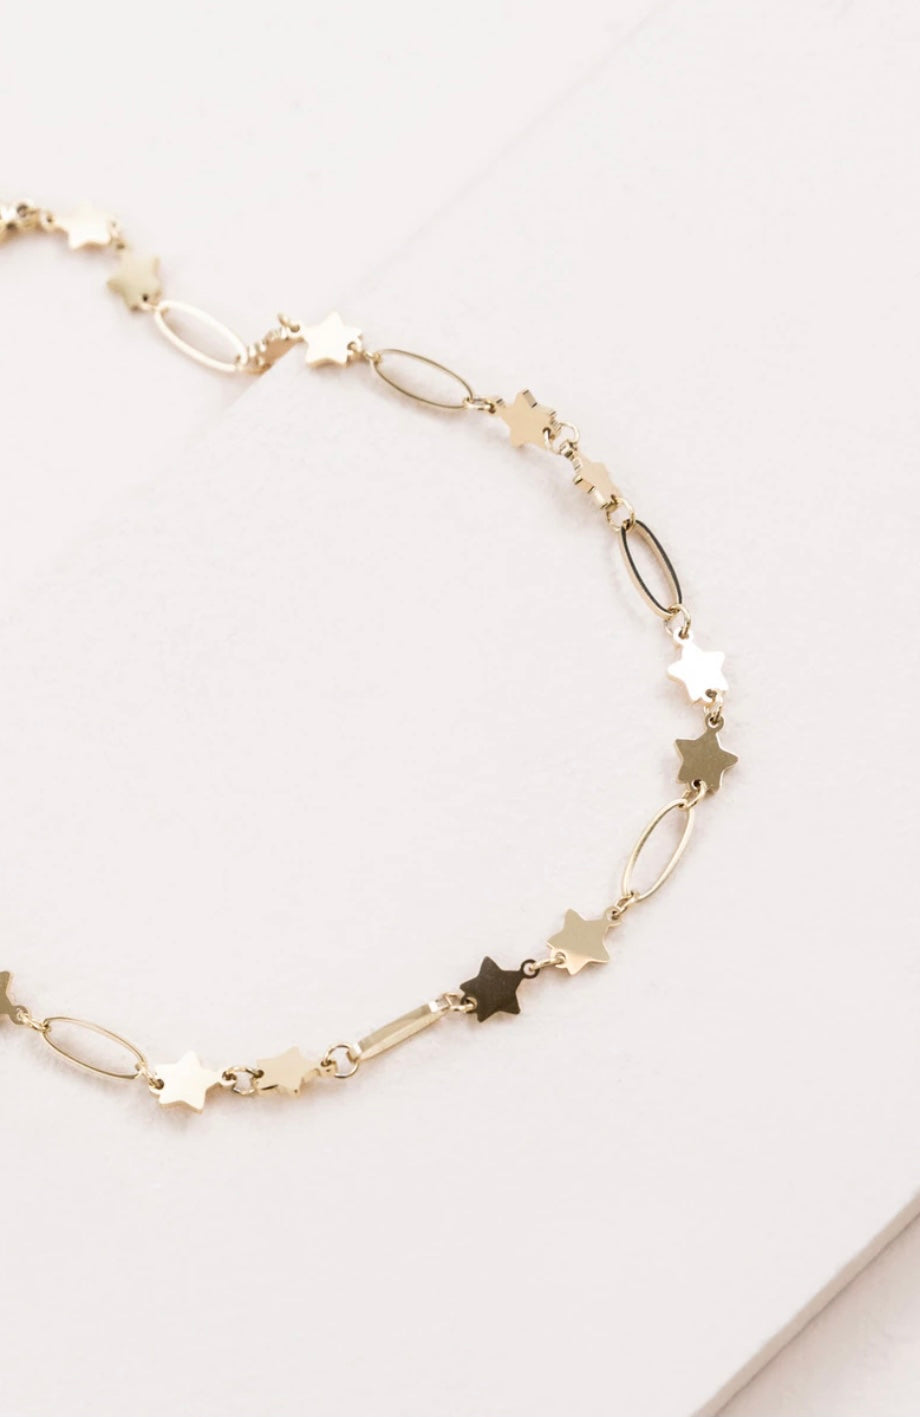 REACH FOR THE STARS ANKLET